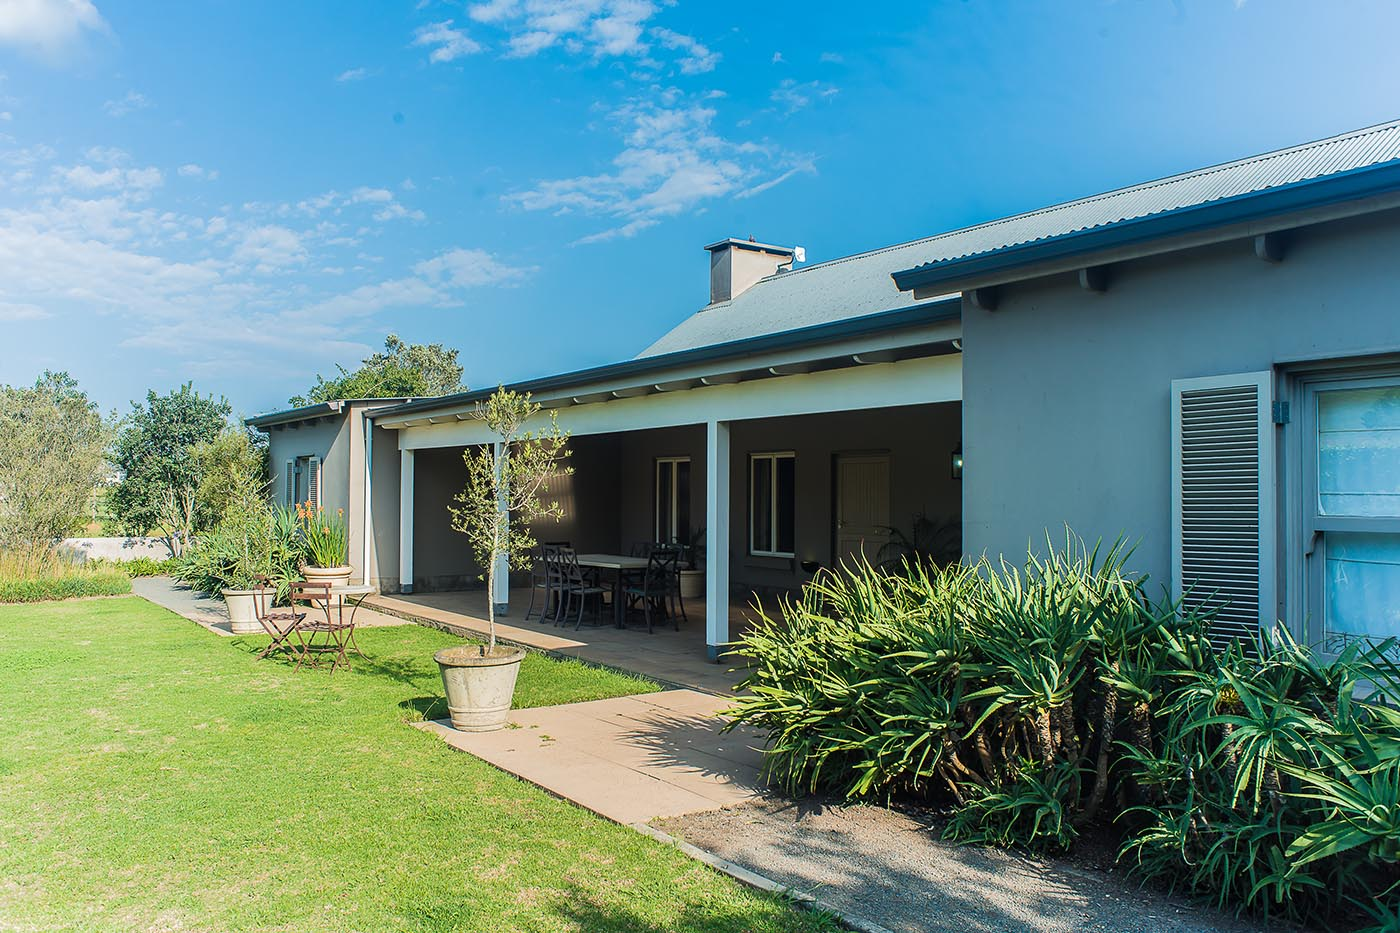 old-tom-morris-cottage-gallery-accommodation-gowrie-lodge-farm-midlands-Nottingham-Road-kzn